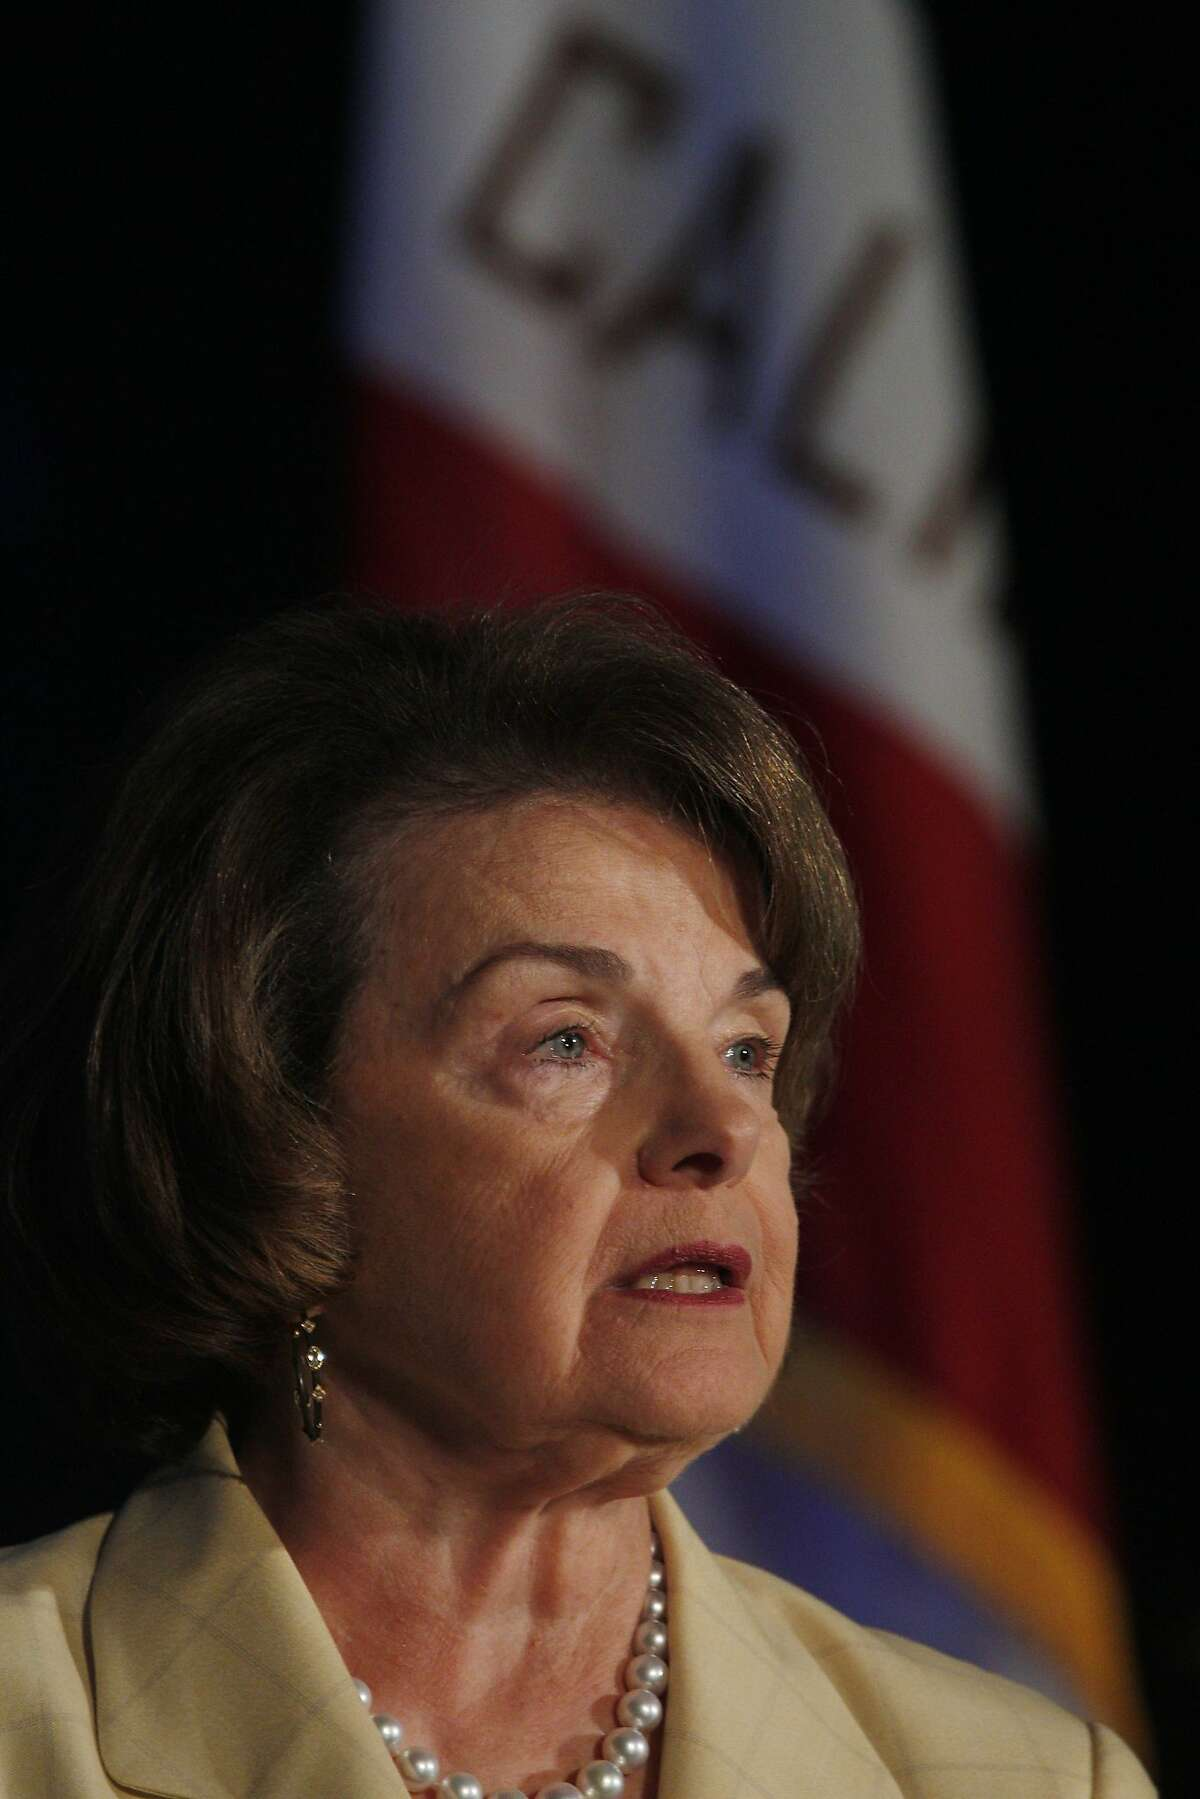 To her credit, Sen. Dianne Feinstein wants to end ethanol mandate.